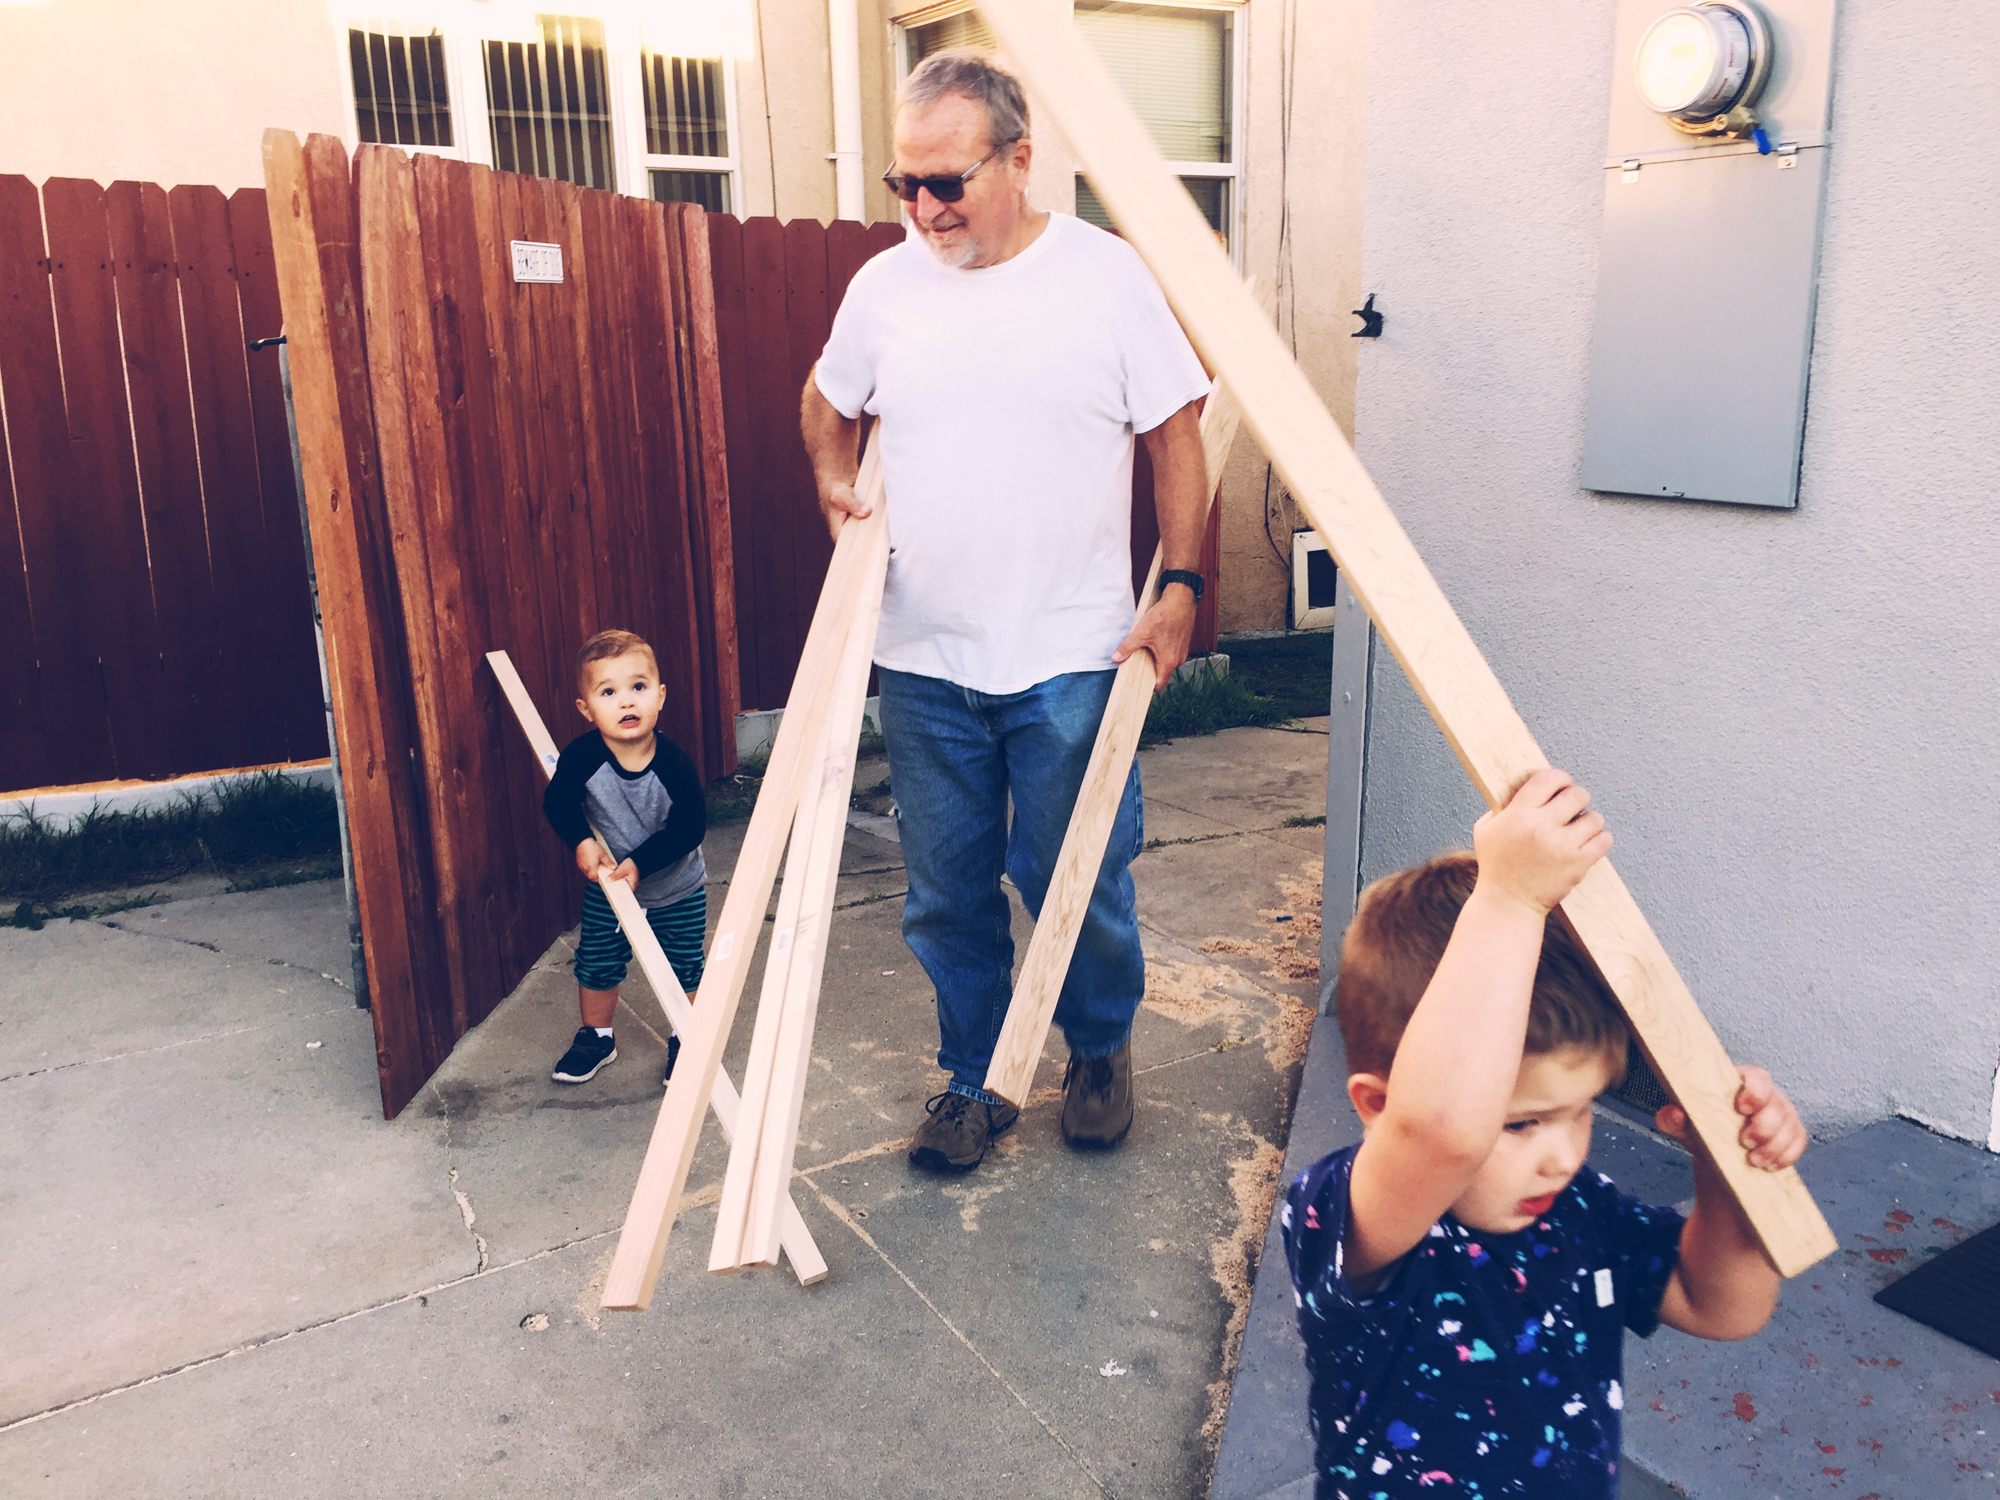 GRANDPA AND THE BOYS - BRINGING IN THE NEW LUMBER.